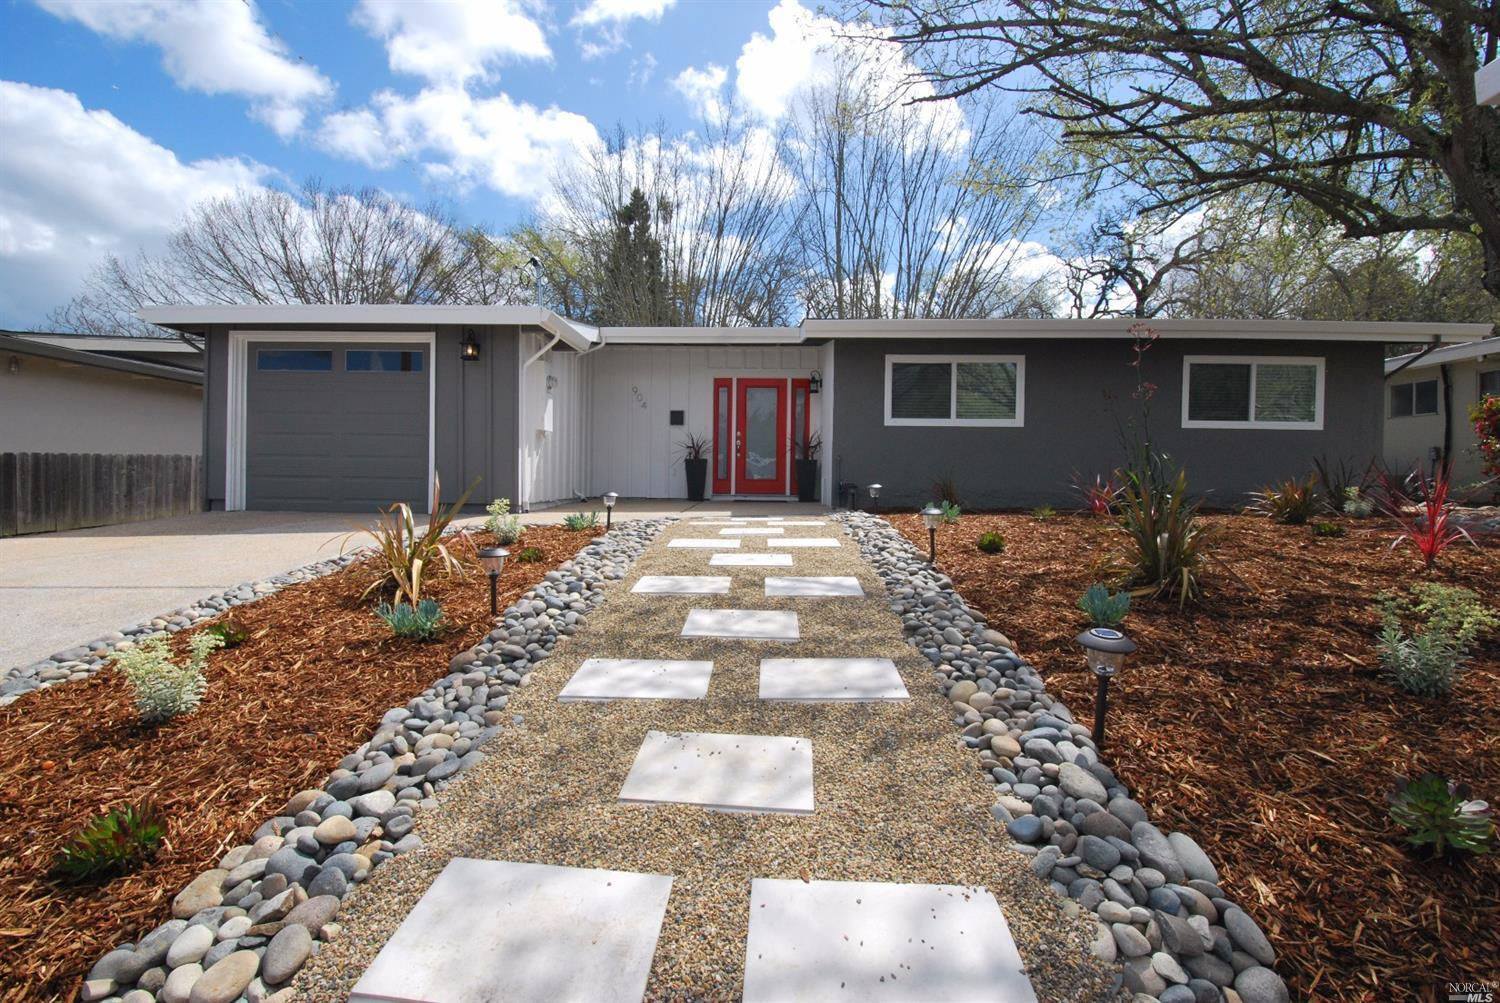 904 glenwood dr sonoma ca 95476 recently sold trulia